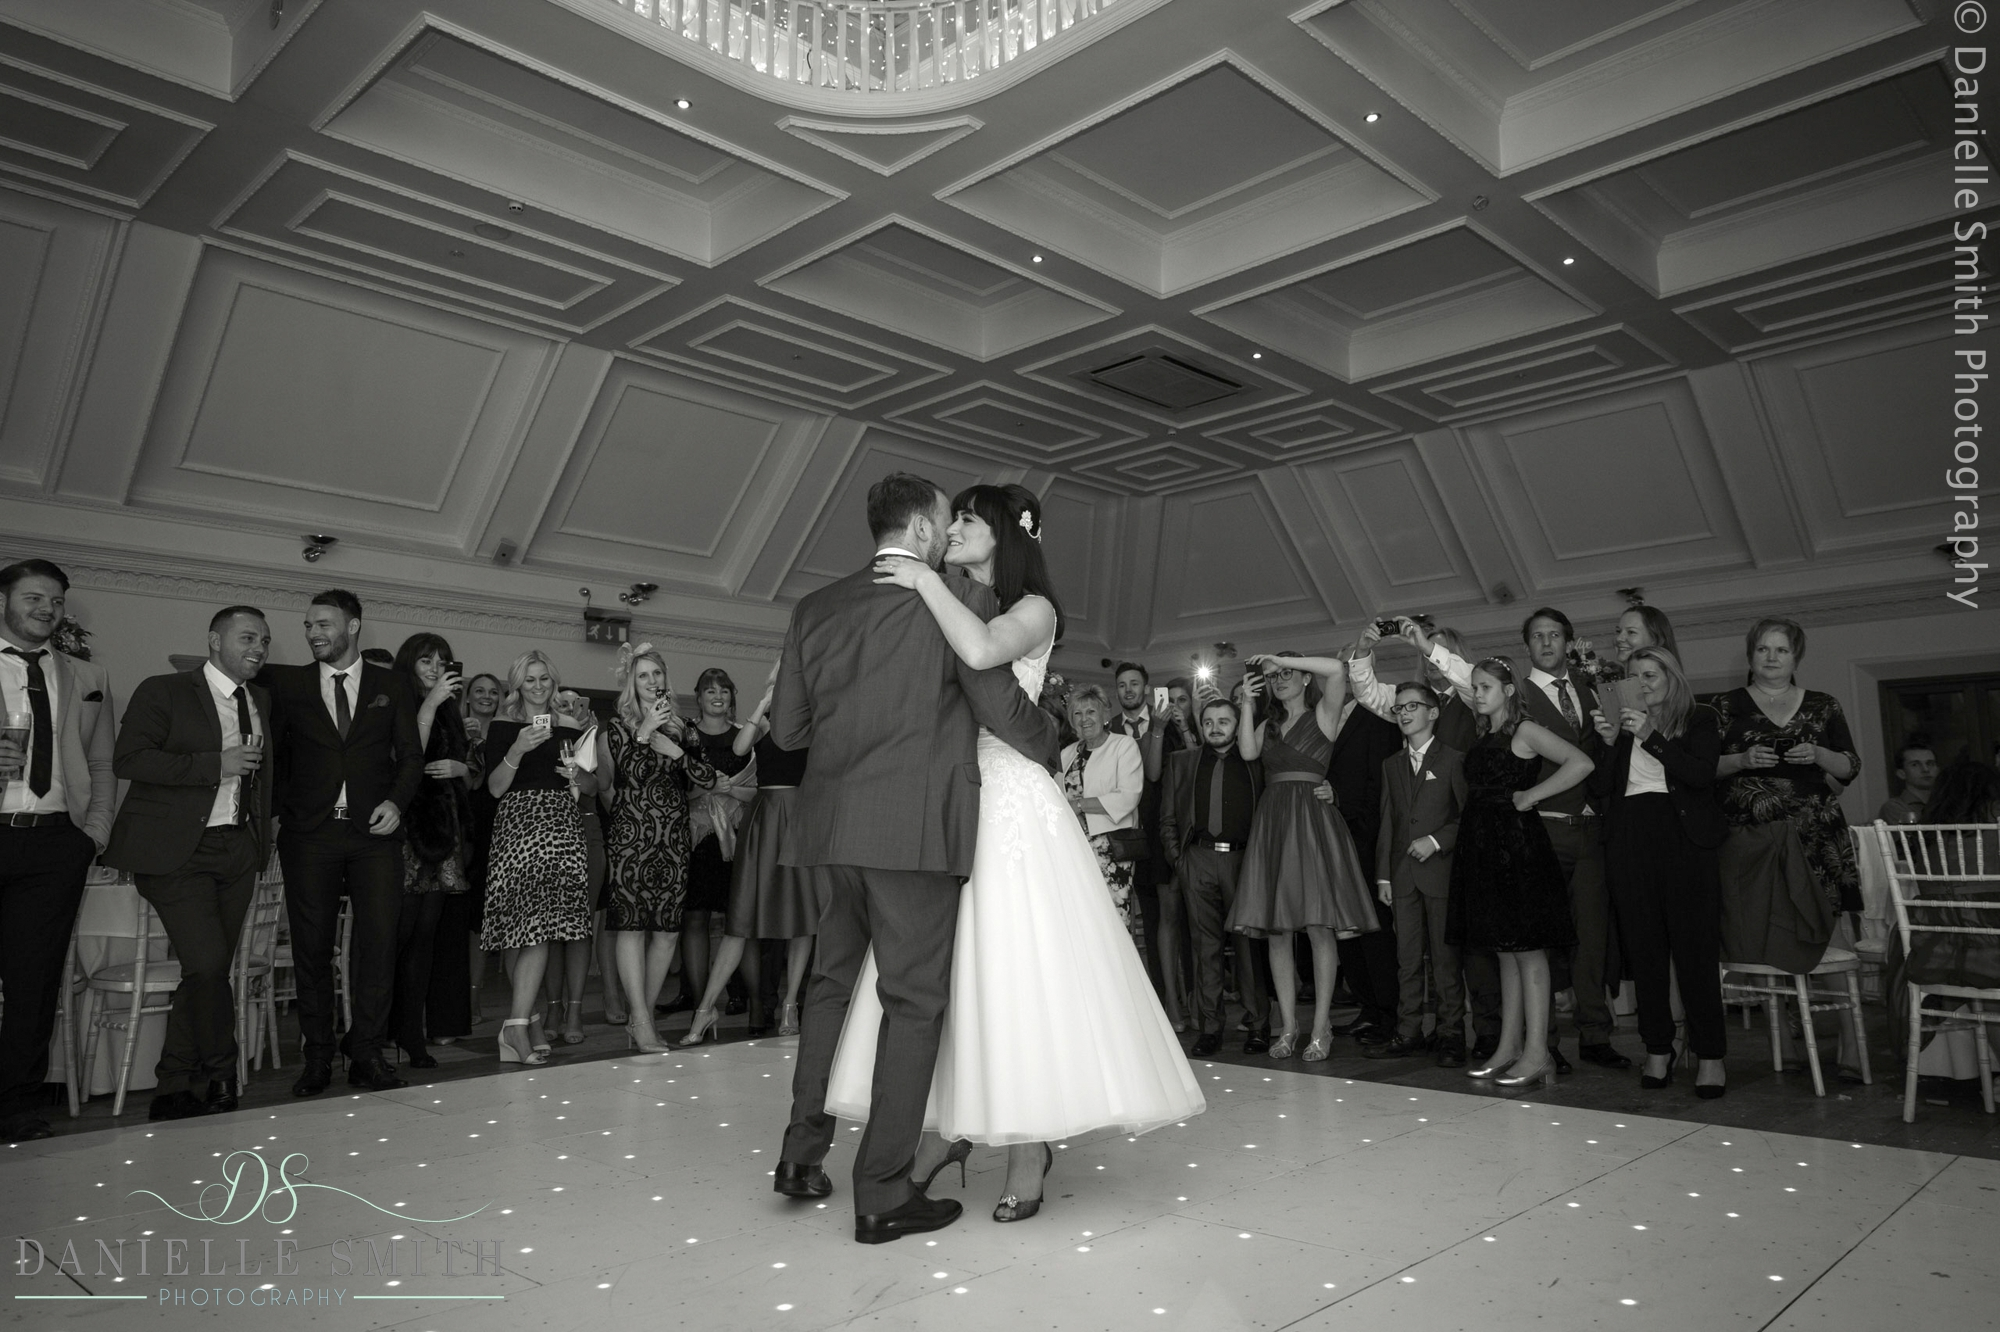 bride and groom first dance - 1920s style wedding